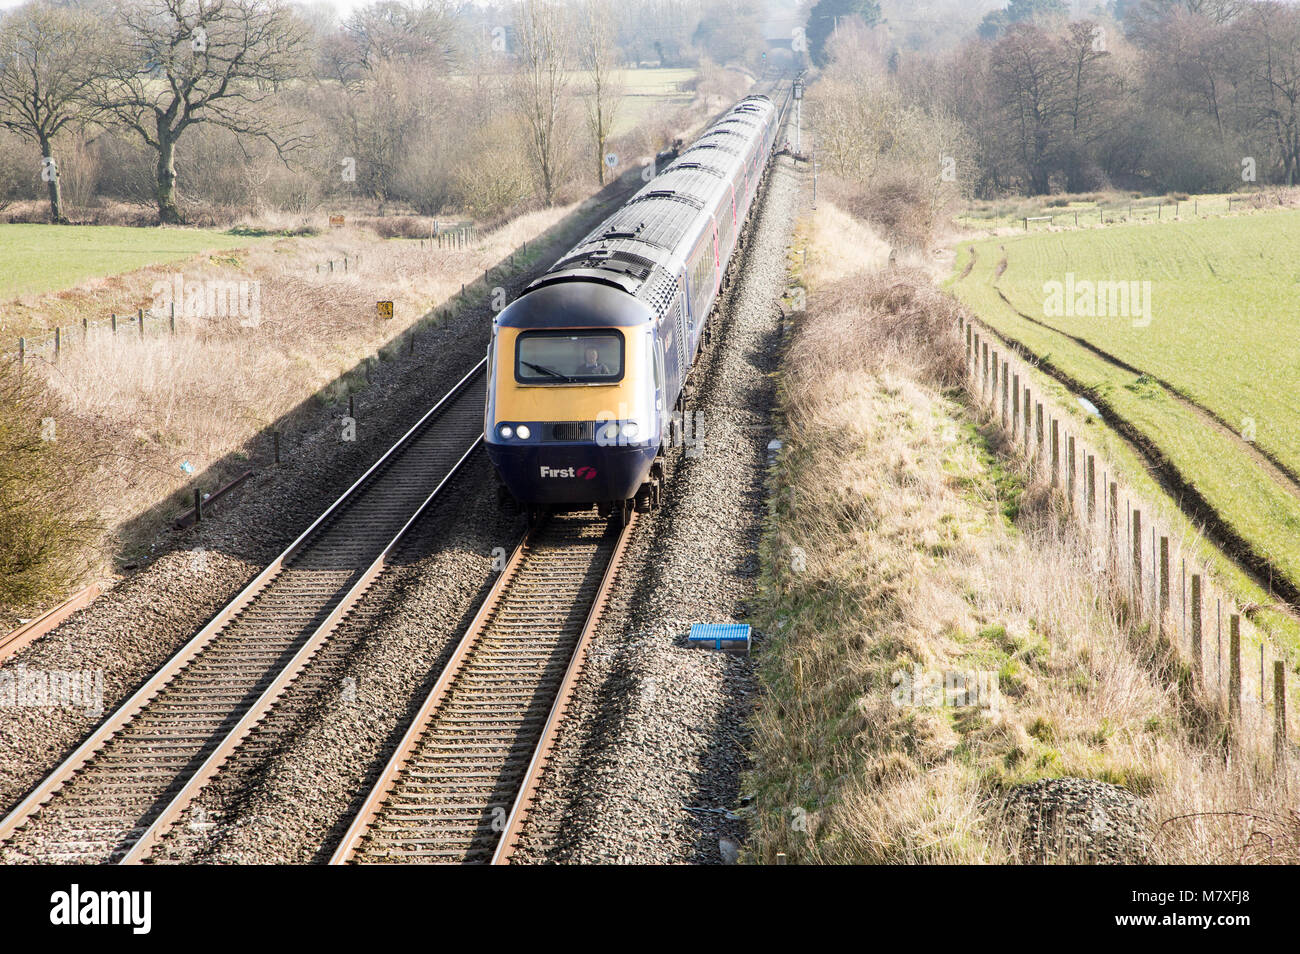 First Great Western train main west coast rail line at Woodborough, Wiltshire, England, UK - Stock Image